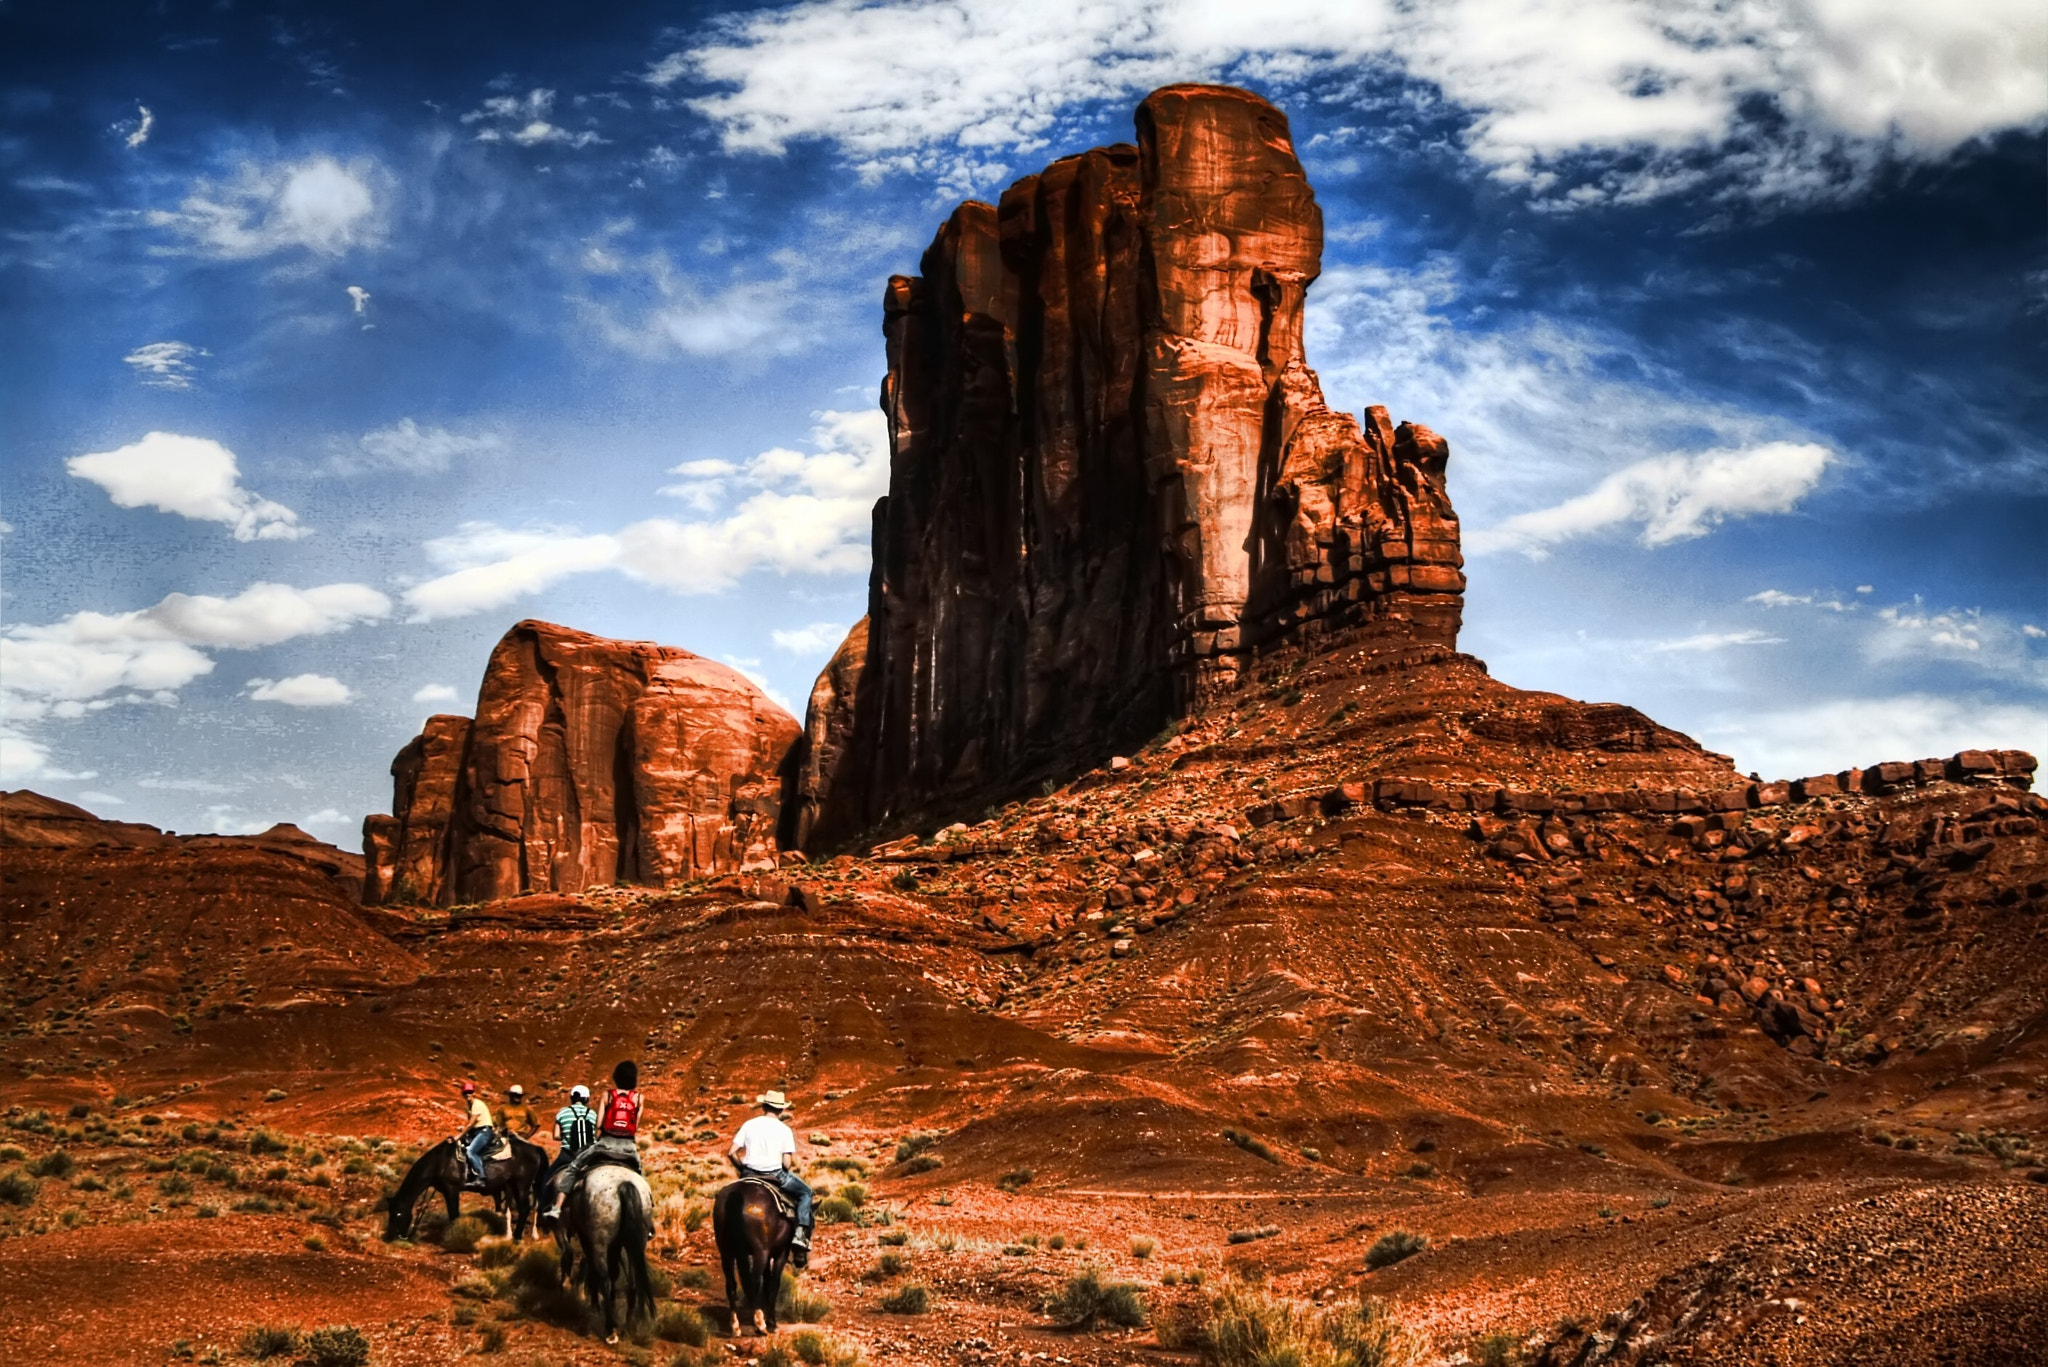 Photograph Cowboys in the Monument Valley by Marco Caciolli on 500px